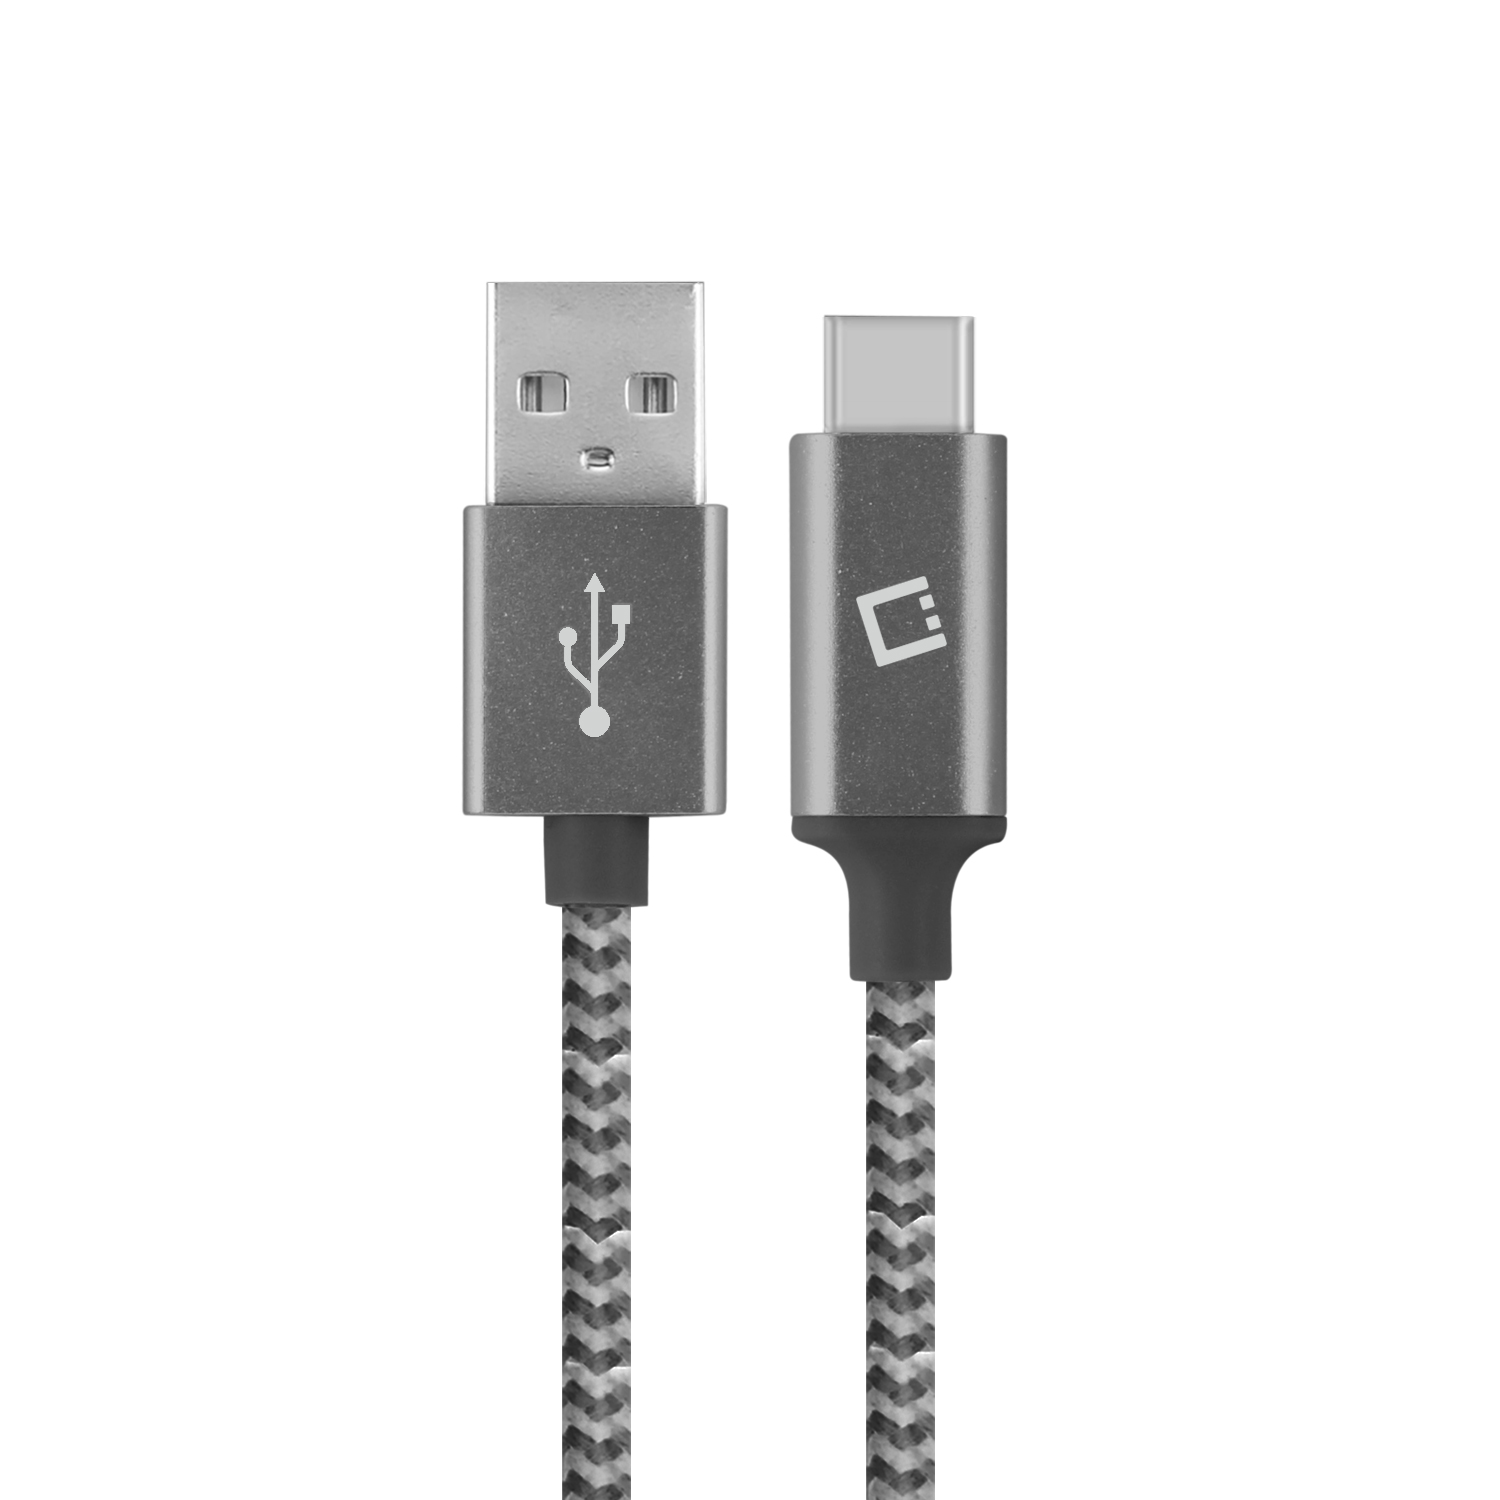 Sony Xperia XA2 Ultra USB Type-C To Type-A Braided Data Power Cable Black 4ft Round